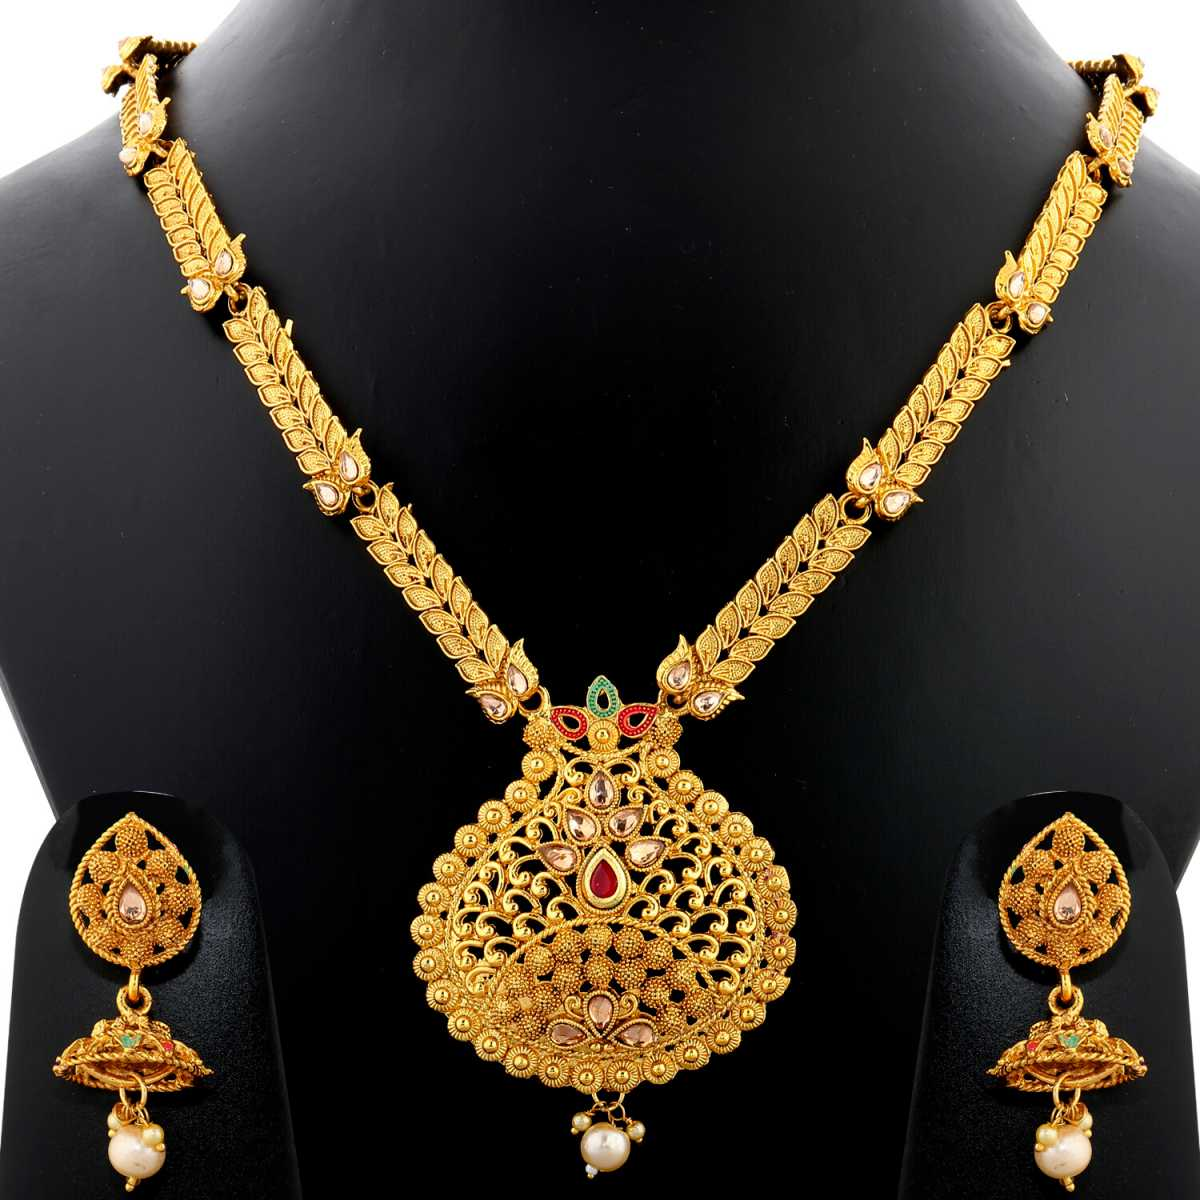 Silver Shine Exclusive Gold Plated Traditional Unique Self Textured Stone Studded Ethnic Gold Colour Long Necklace Set  Jewellery For Women And Girls